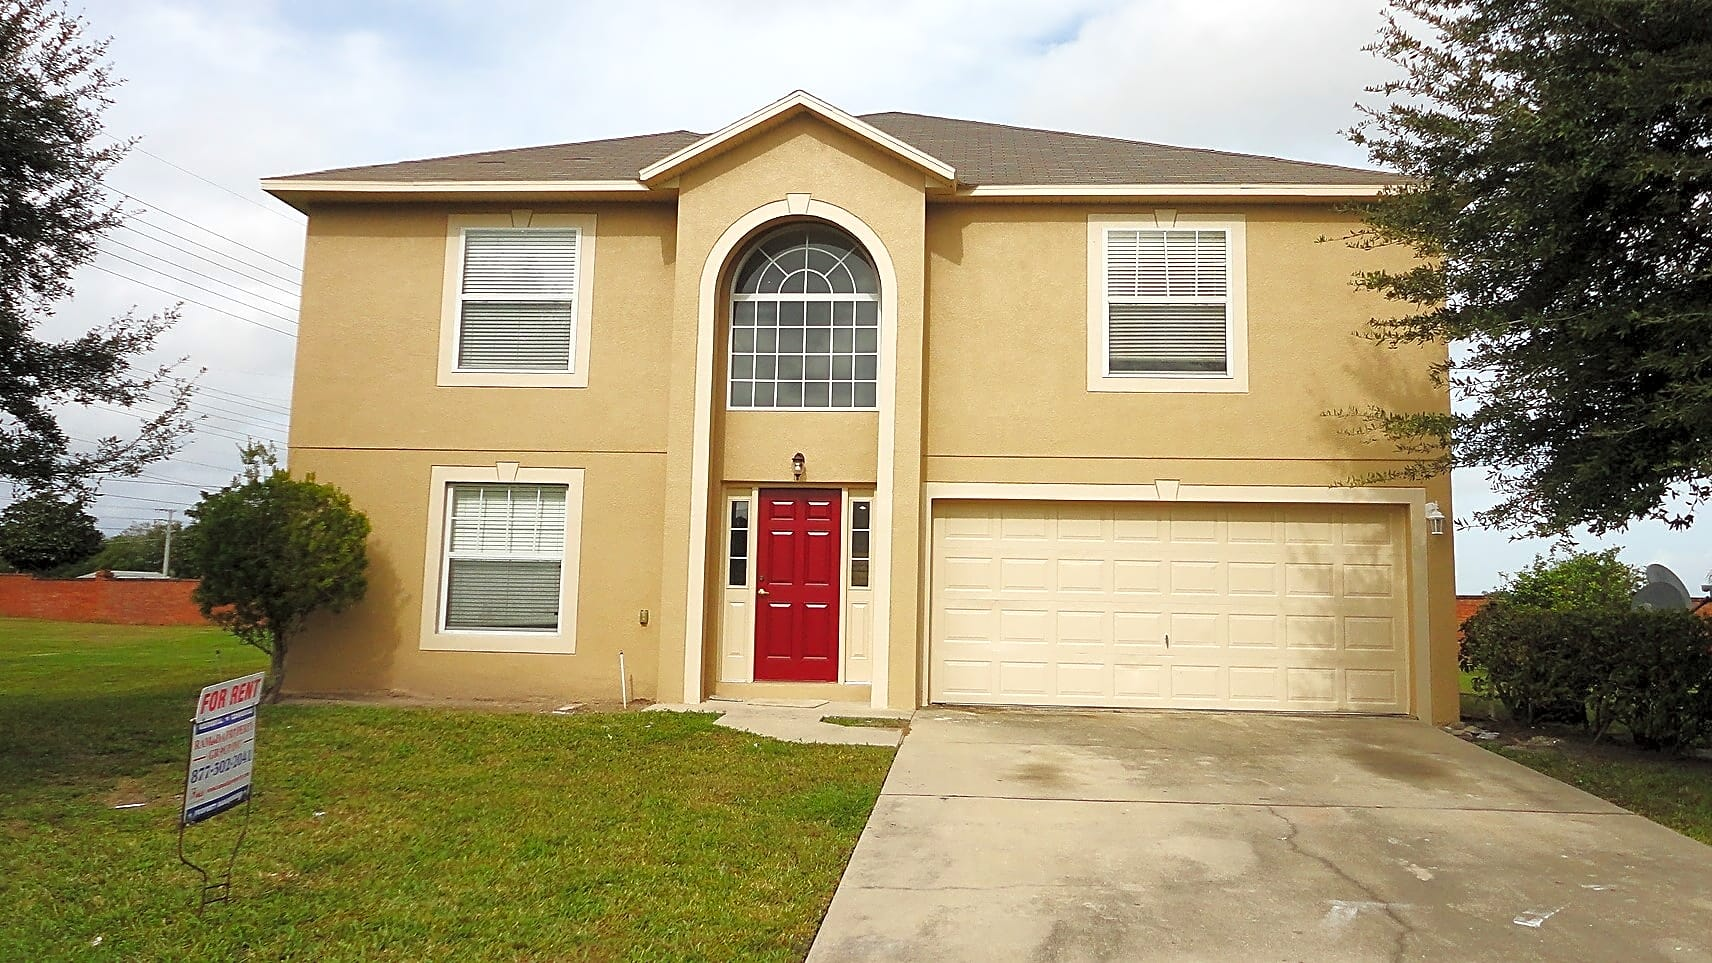 House for rent kissimmee fl / Cheap motels near miami airport